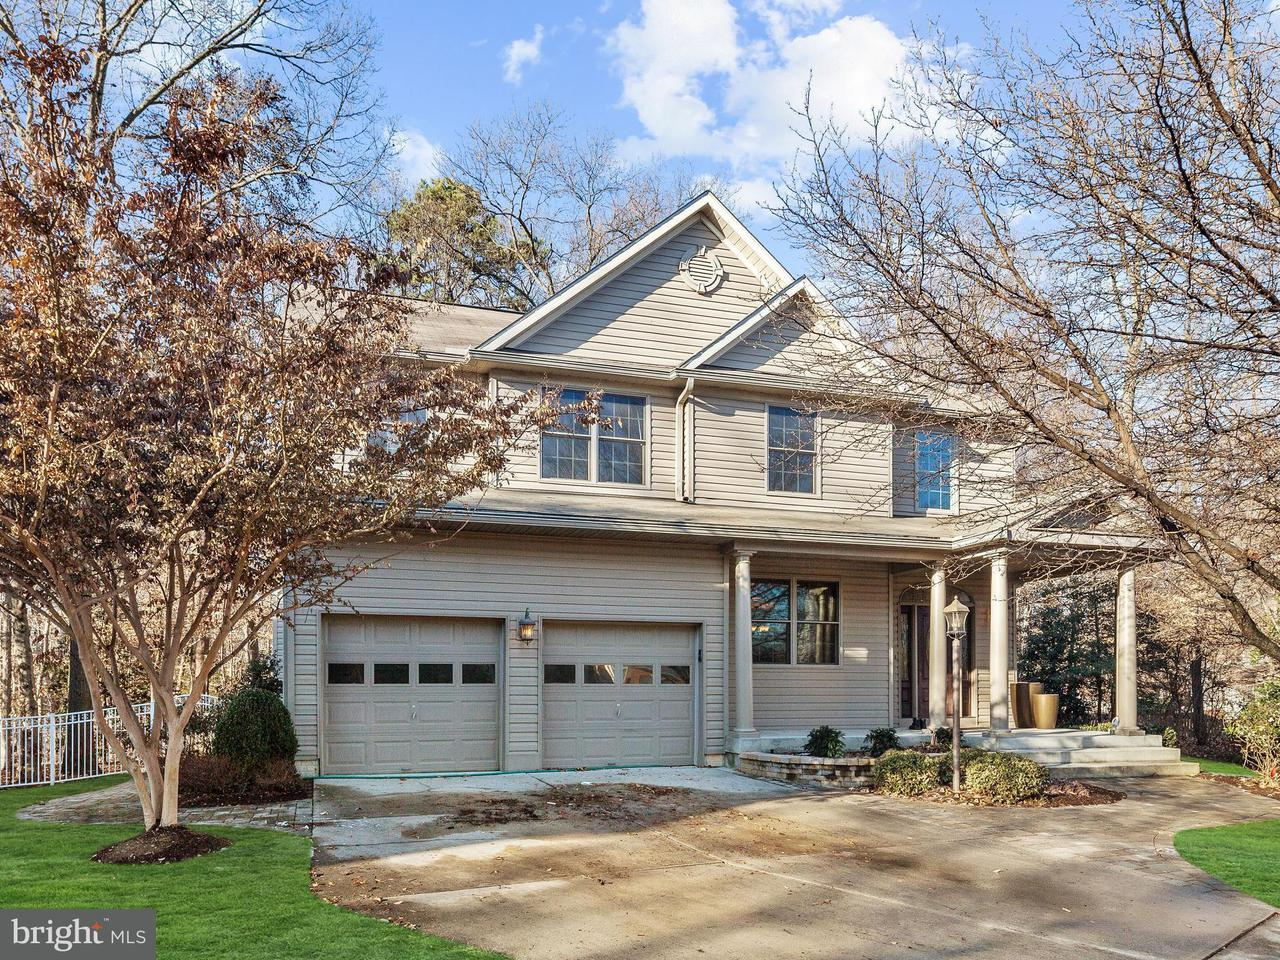 Single Family Home for Sale at 1592 CHAPMAN Road 1592 CHAPMAN Road Crofton, Maryland 21114 United States